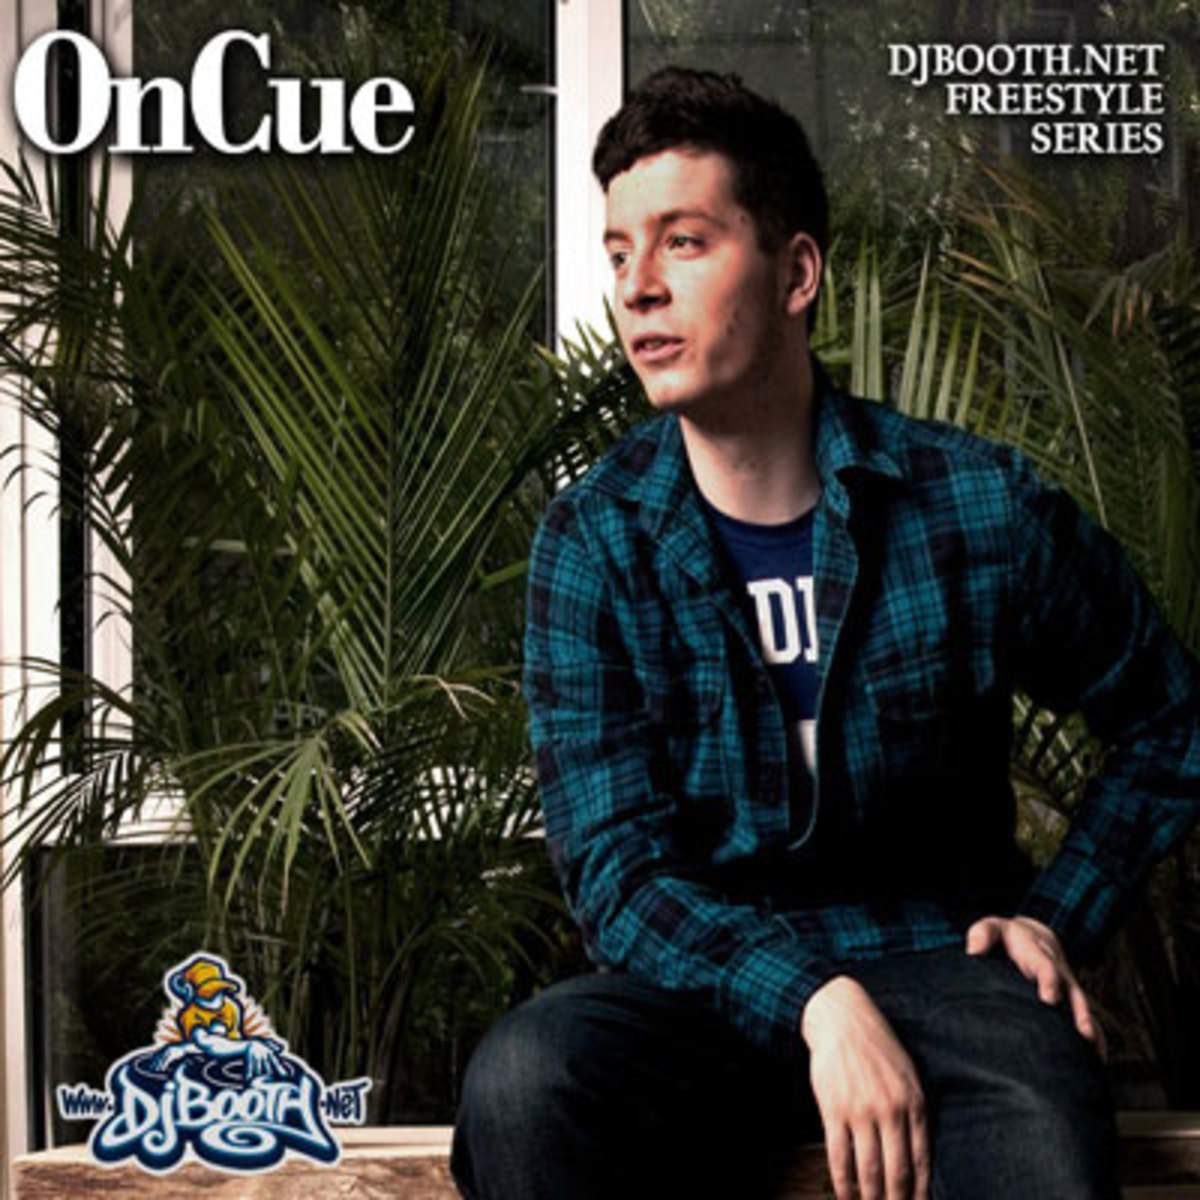 oncue-freestyle.jpg